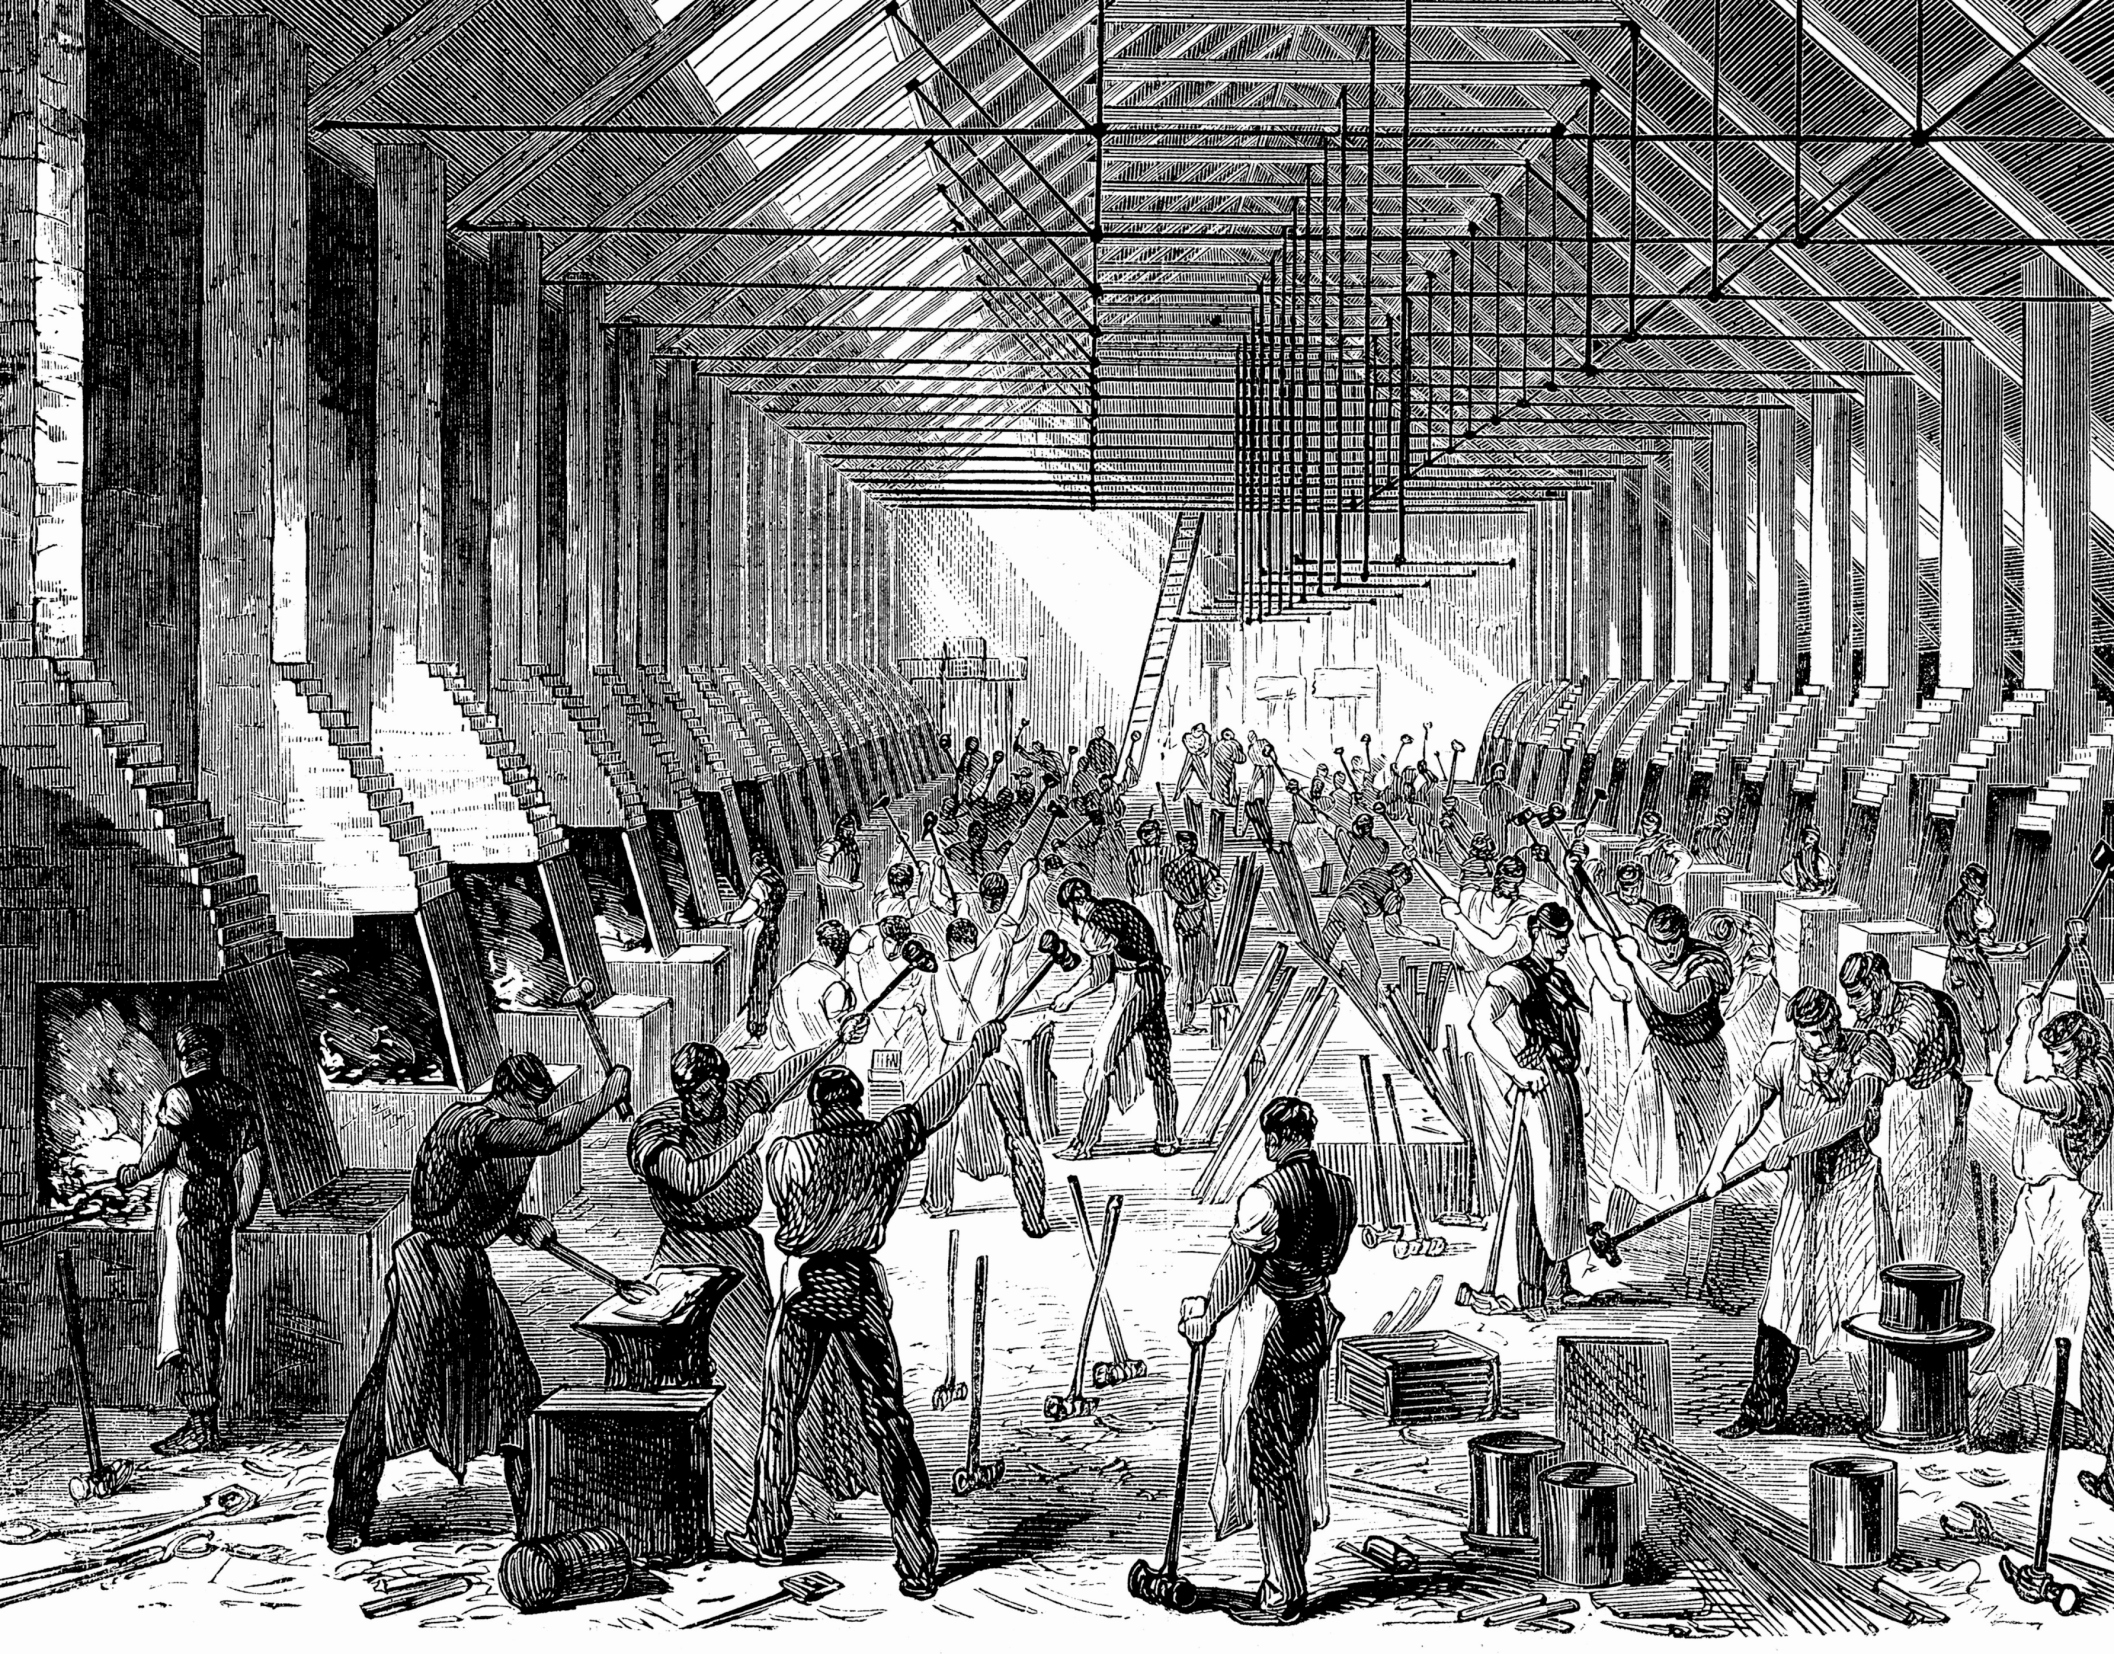 Why Did Immigrants Join Factories In The Late 1800s Through 1920s